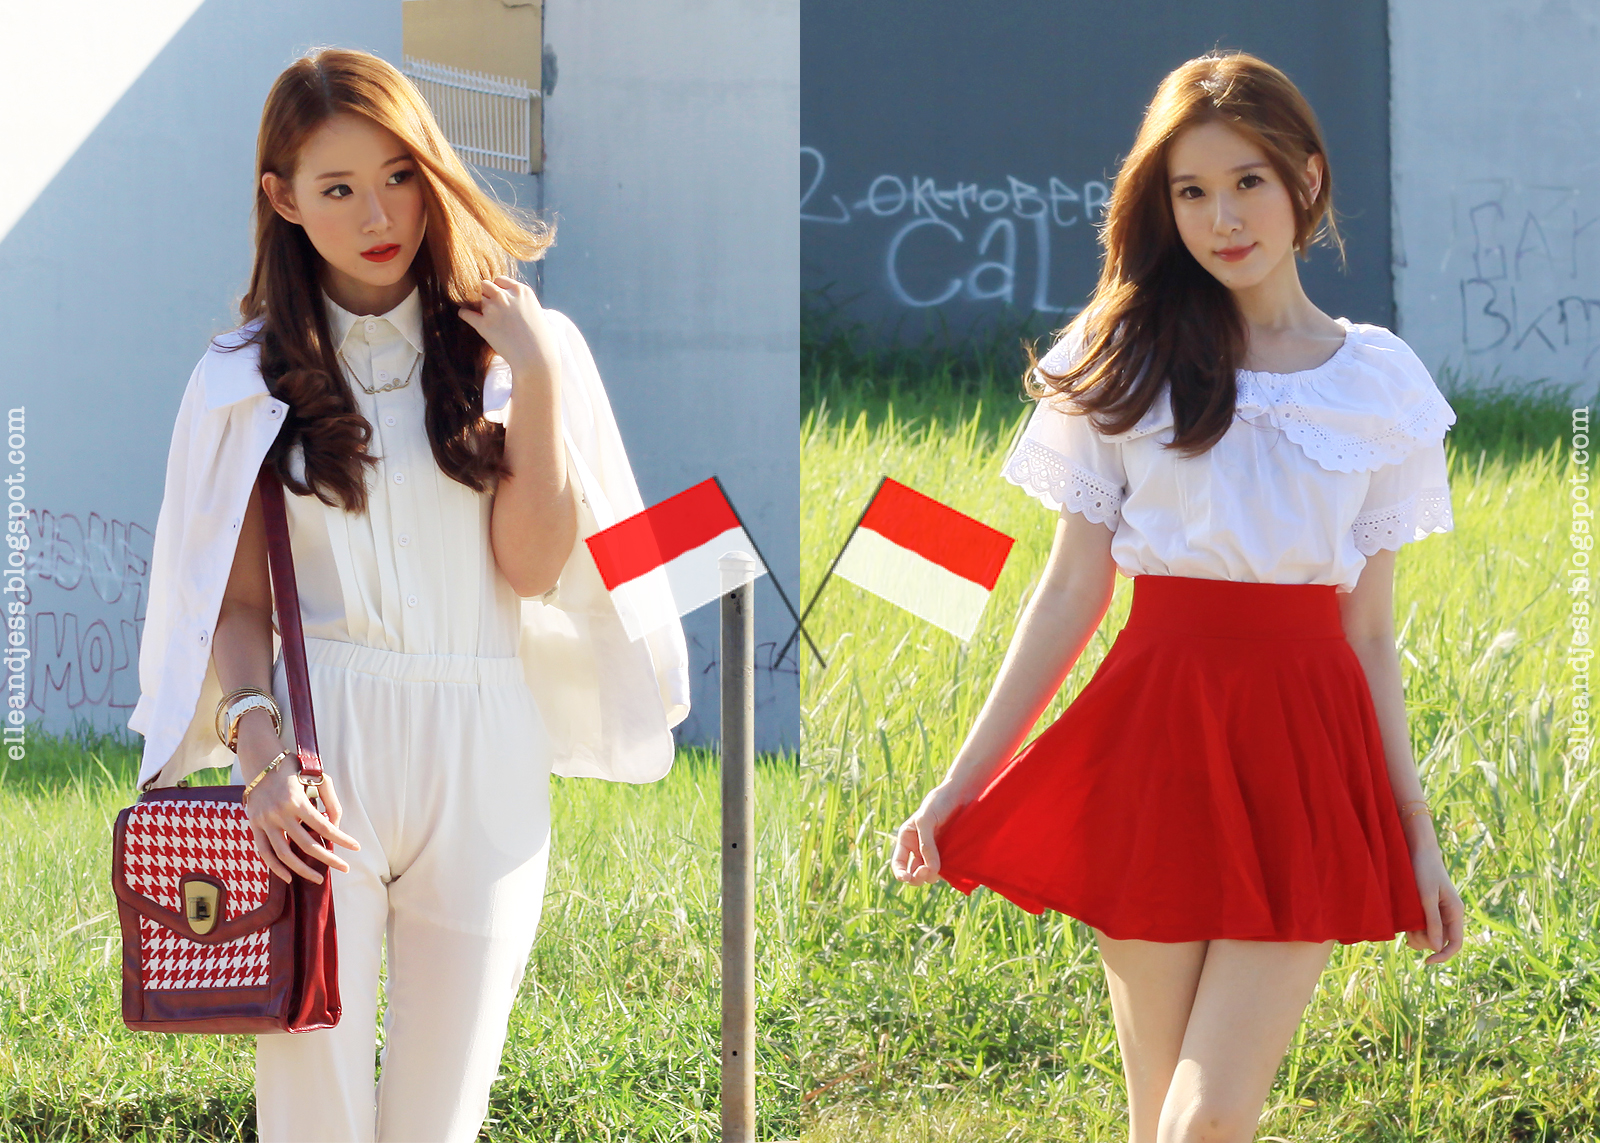 Merdeka Elle And Jess Bloglovin Extri Jam Tangan Pria X3001a Hitam Happy Independence Day Our Country Indonesia